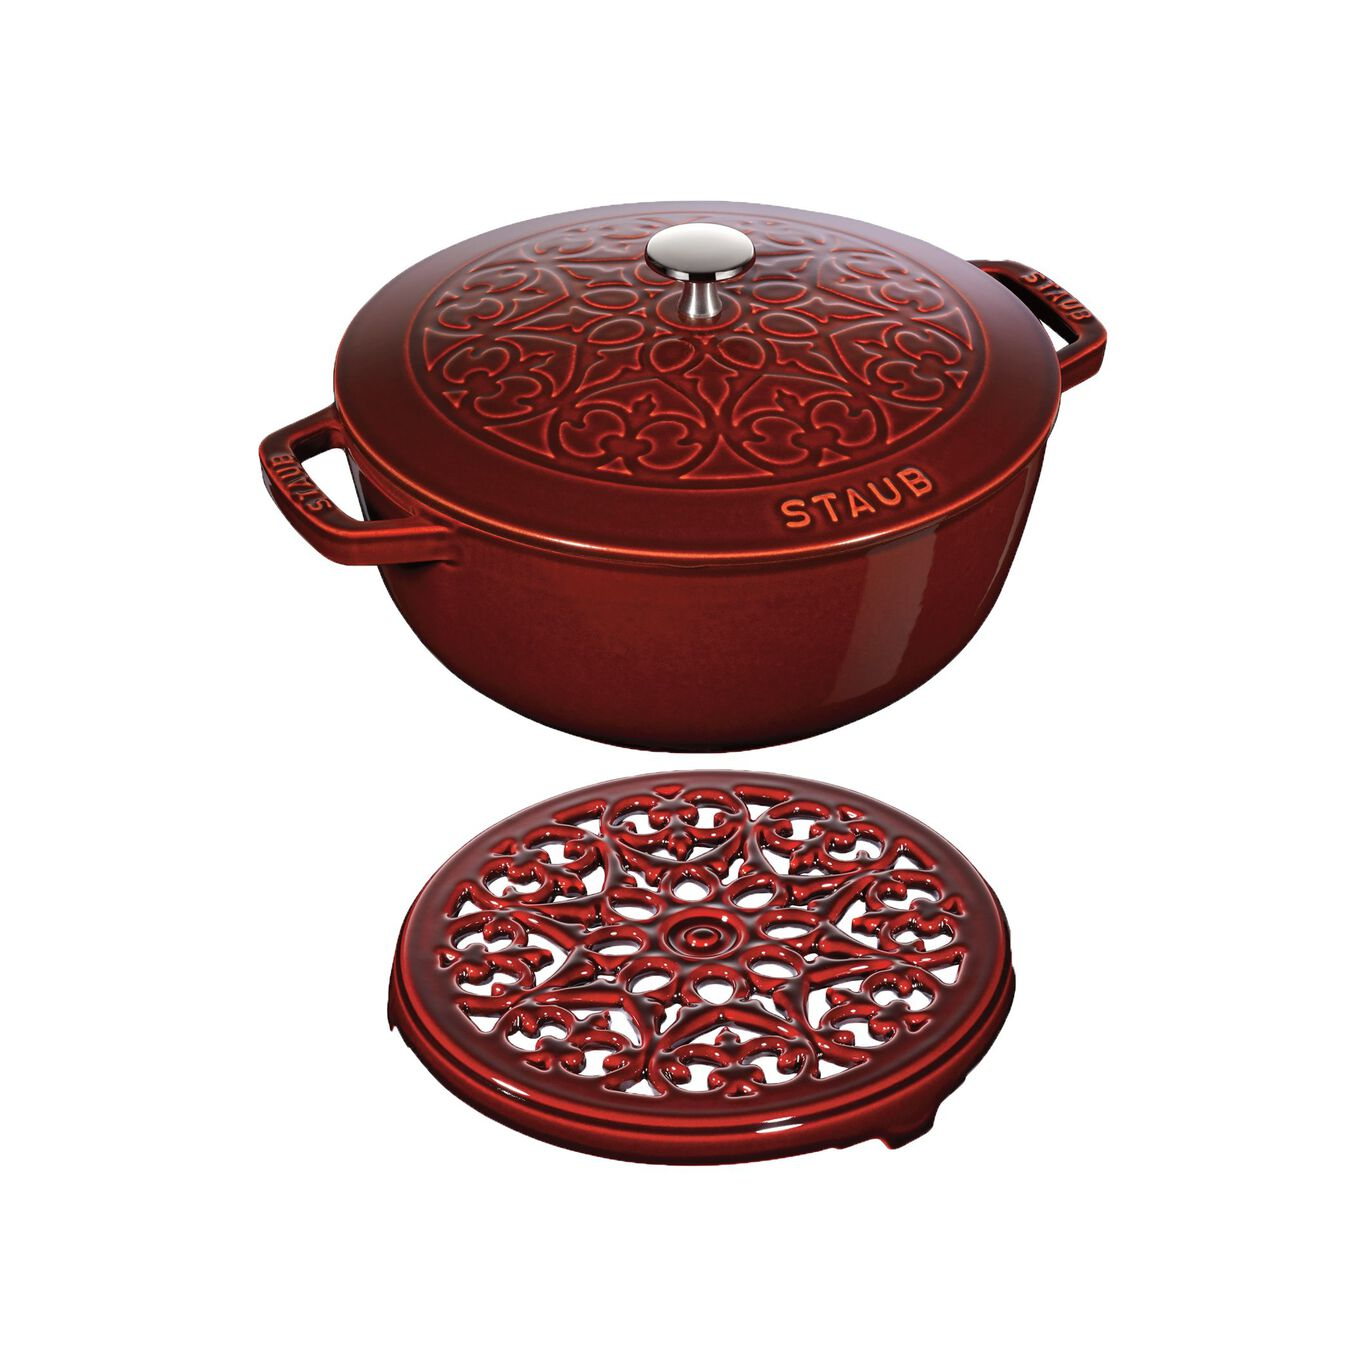 Pot set, lily decal, 2 Piece | round | Cast iron | grenadine-red,,large 1